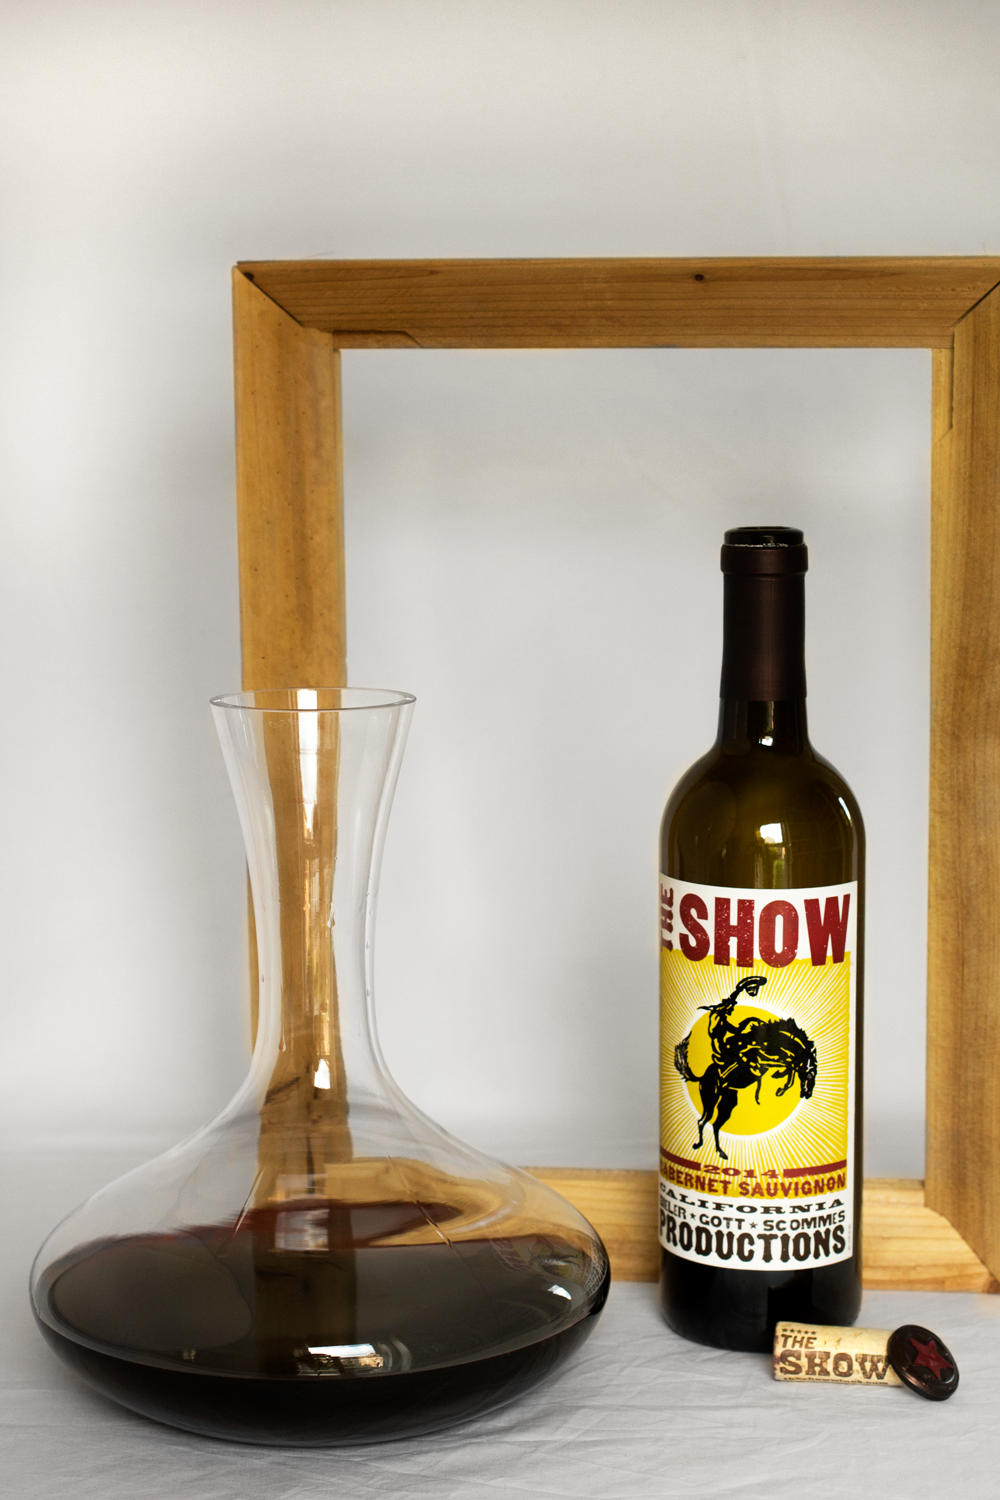 The-Show-Cabernet-Sauvignon-from-California-Bottle-Bitches-Review.png